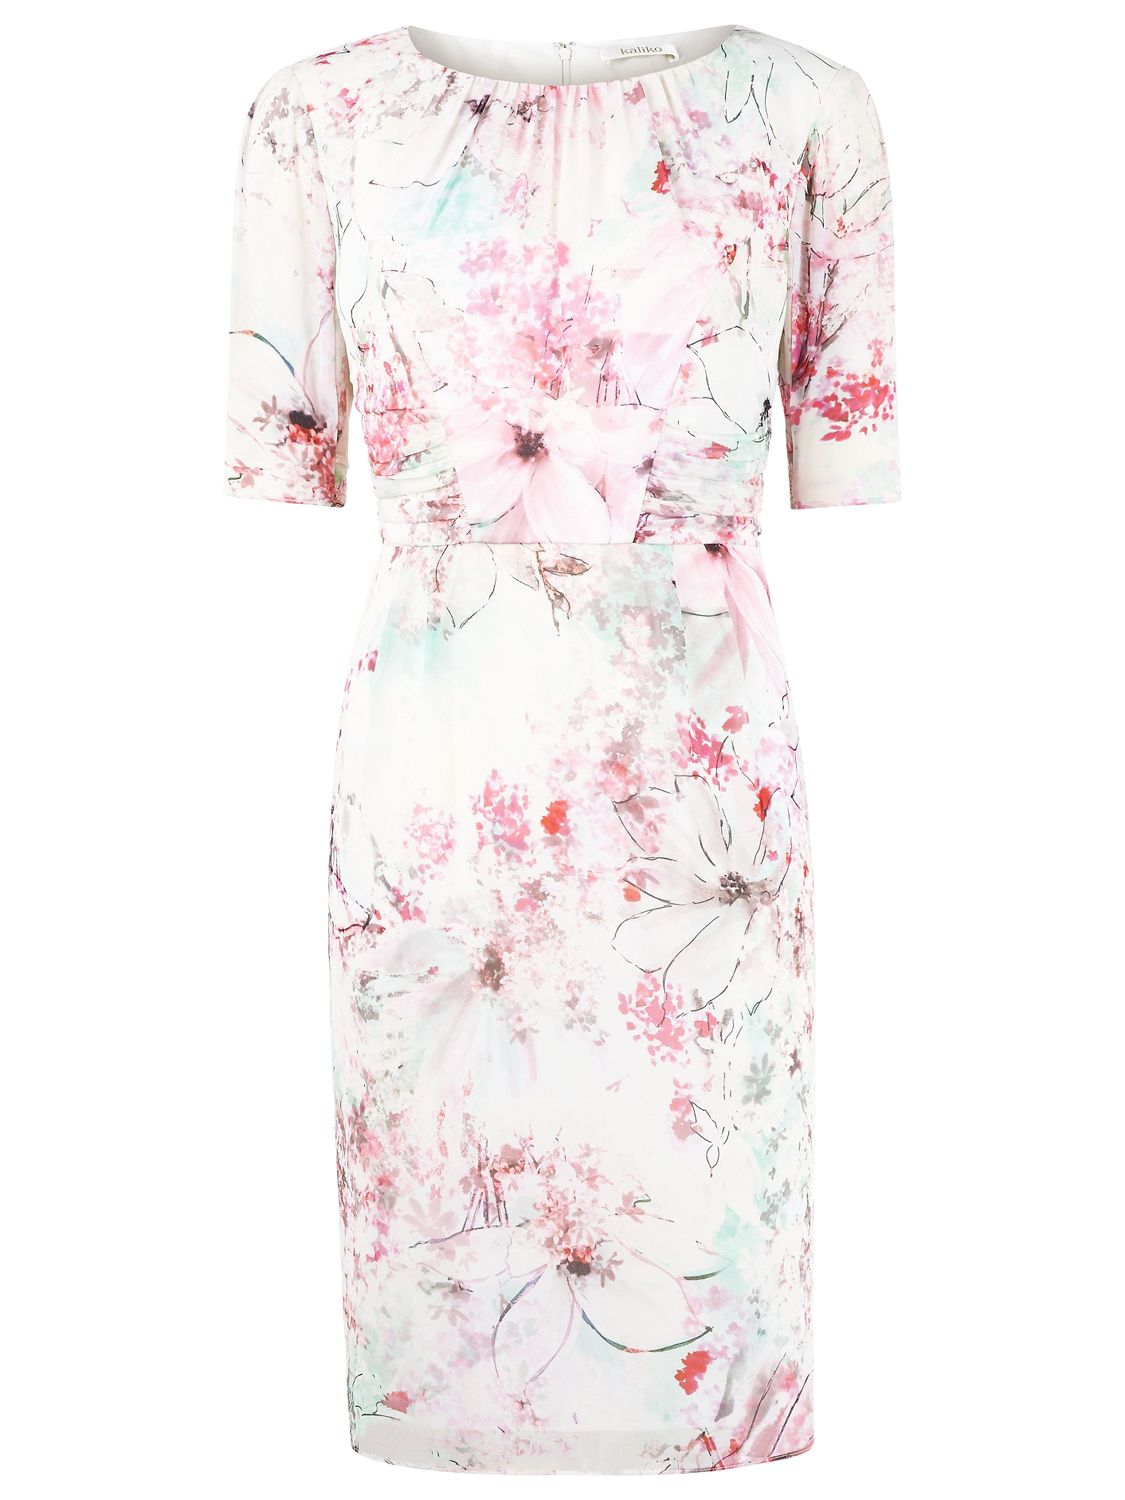 Kaliko Magnolia Floral Dress, Multi Pink